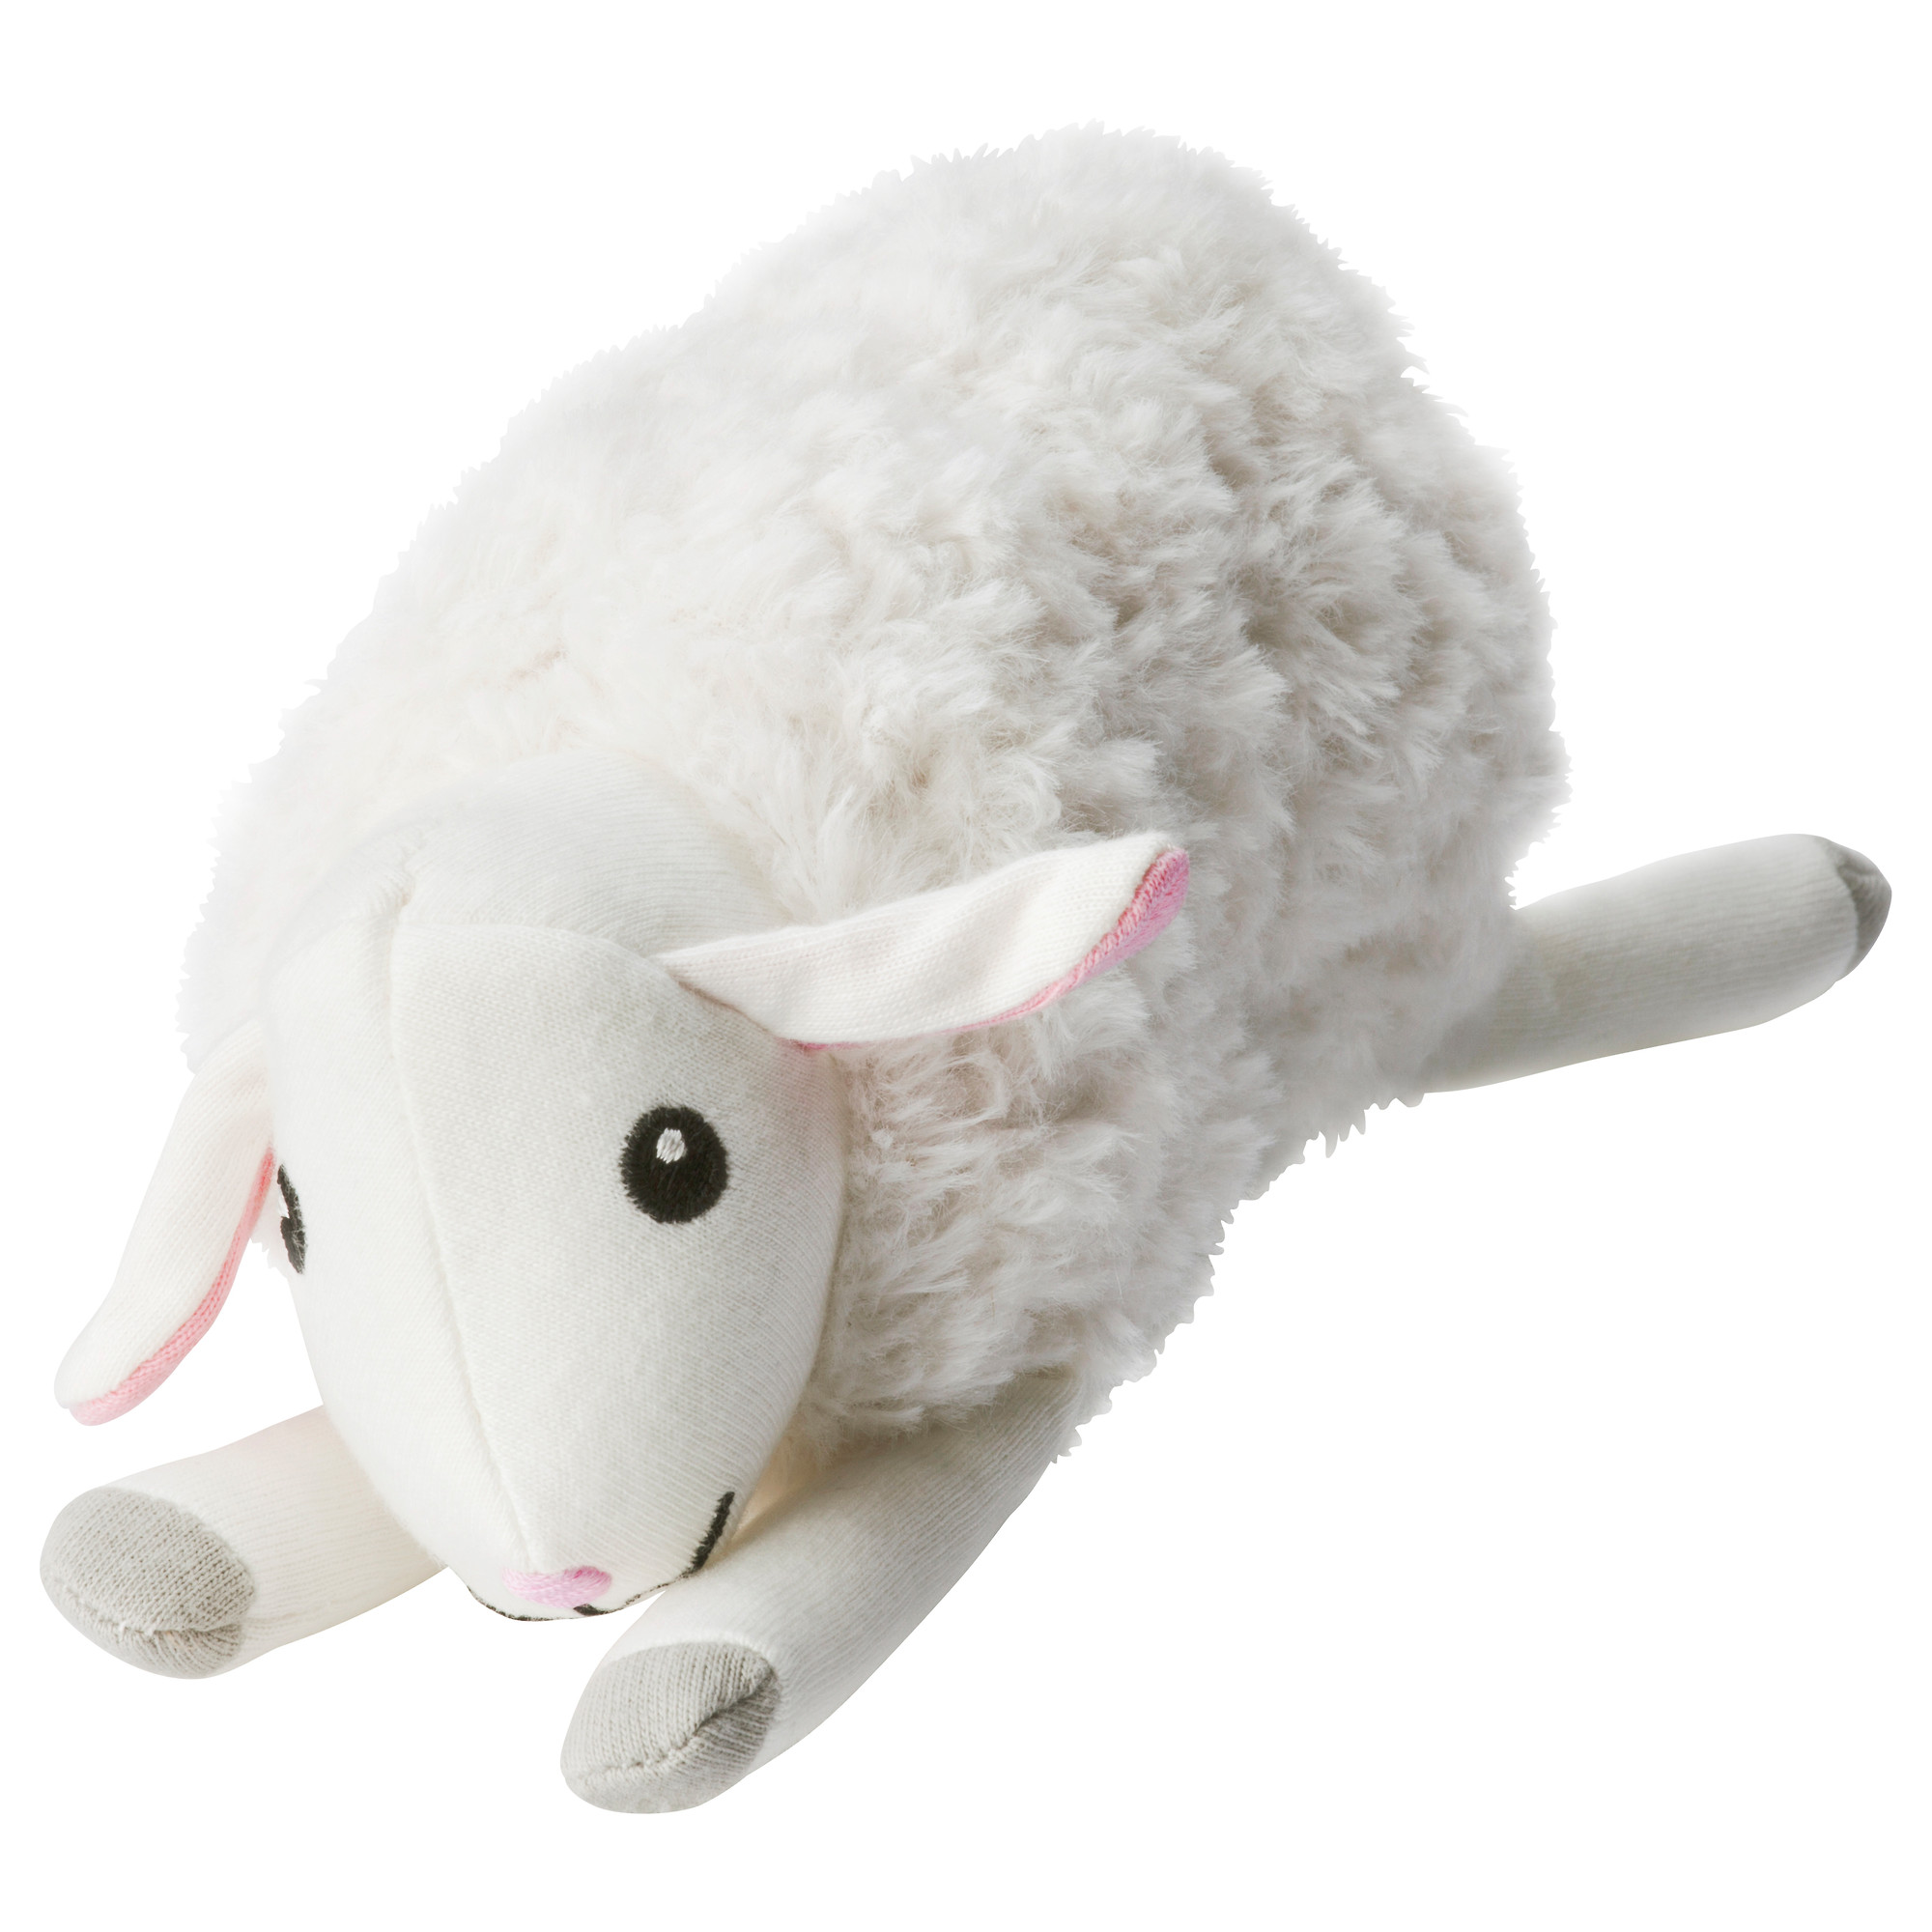 NEW Ikea Leka Musical Toy Sheep Baby Infant Soft Rattle QUICK SHIPPING